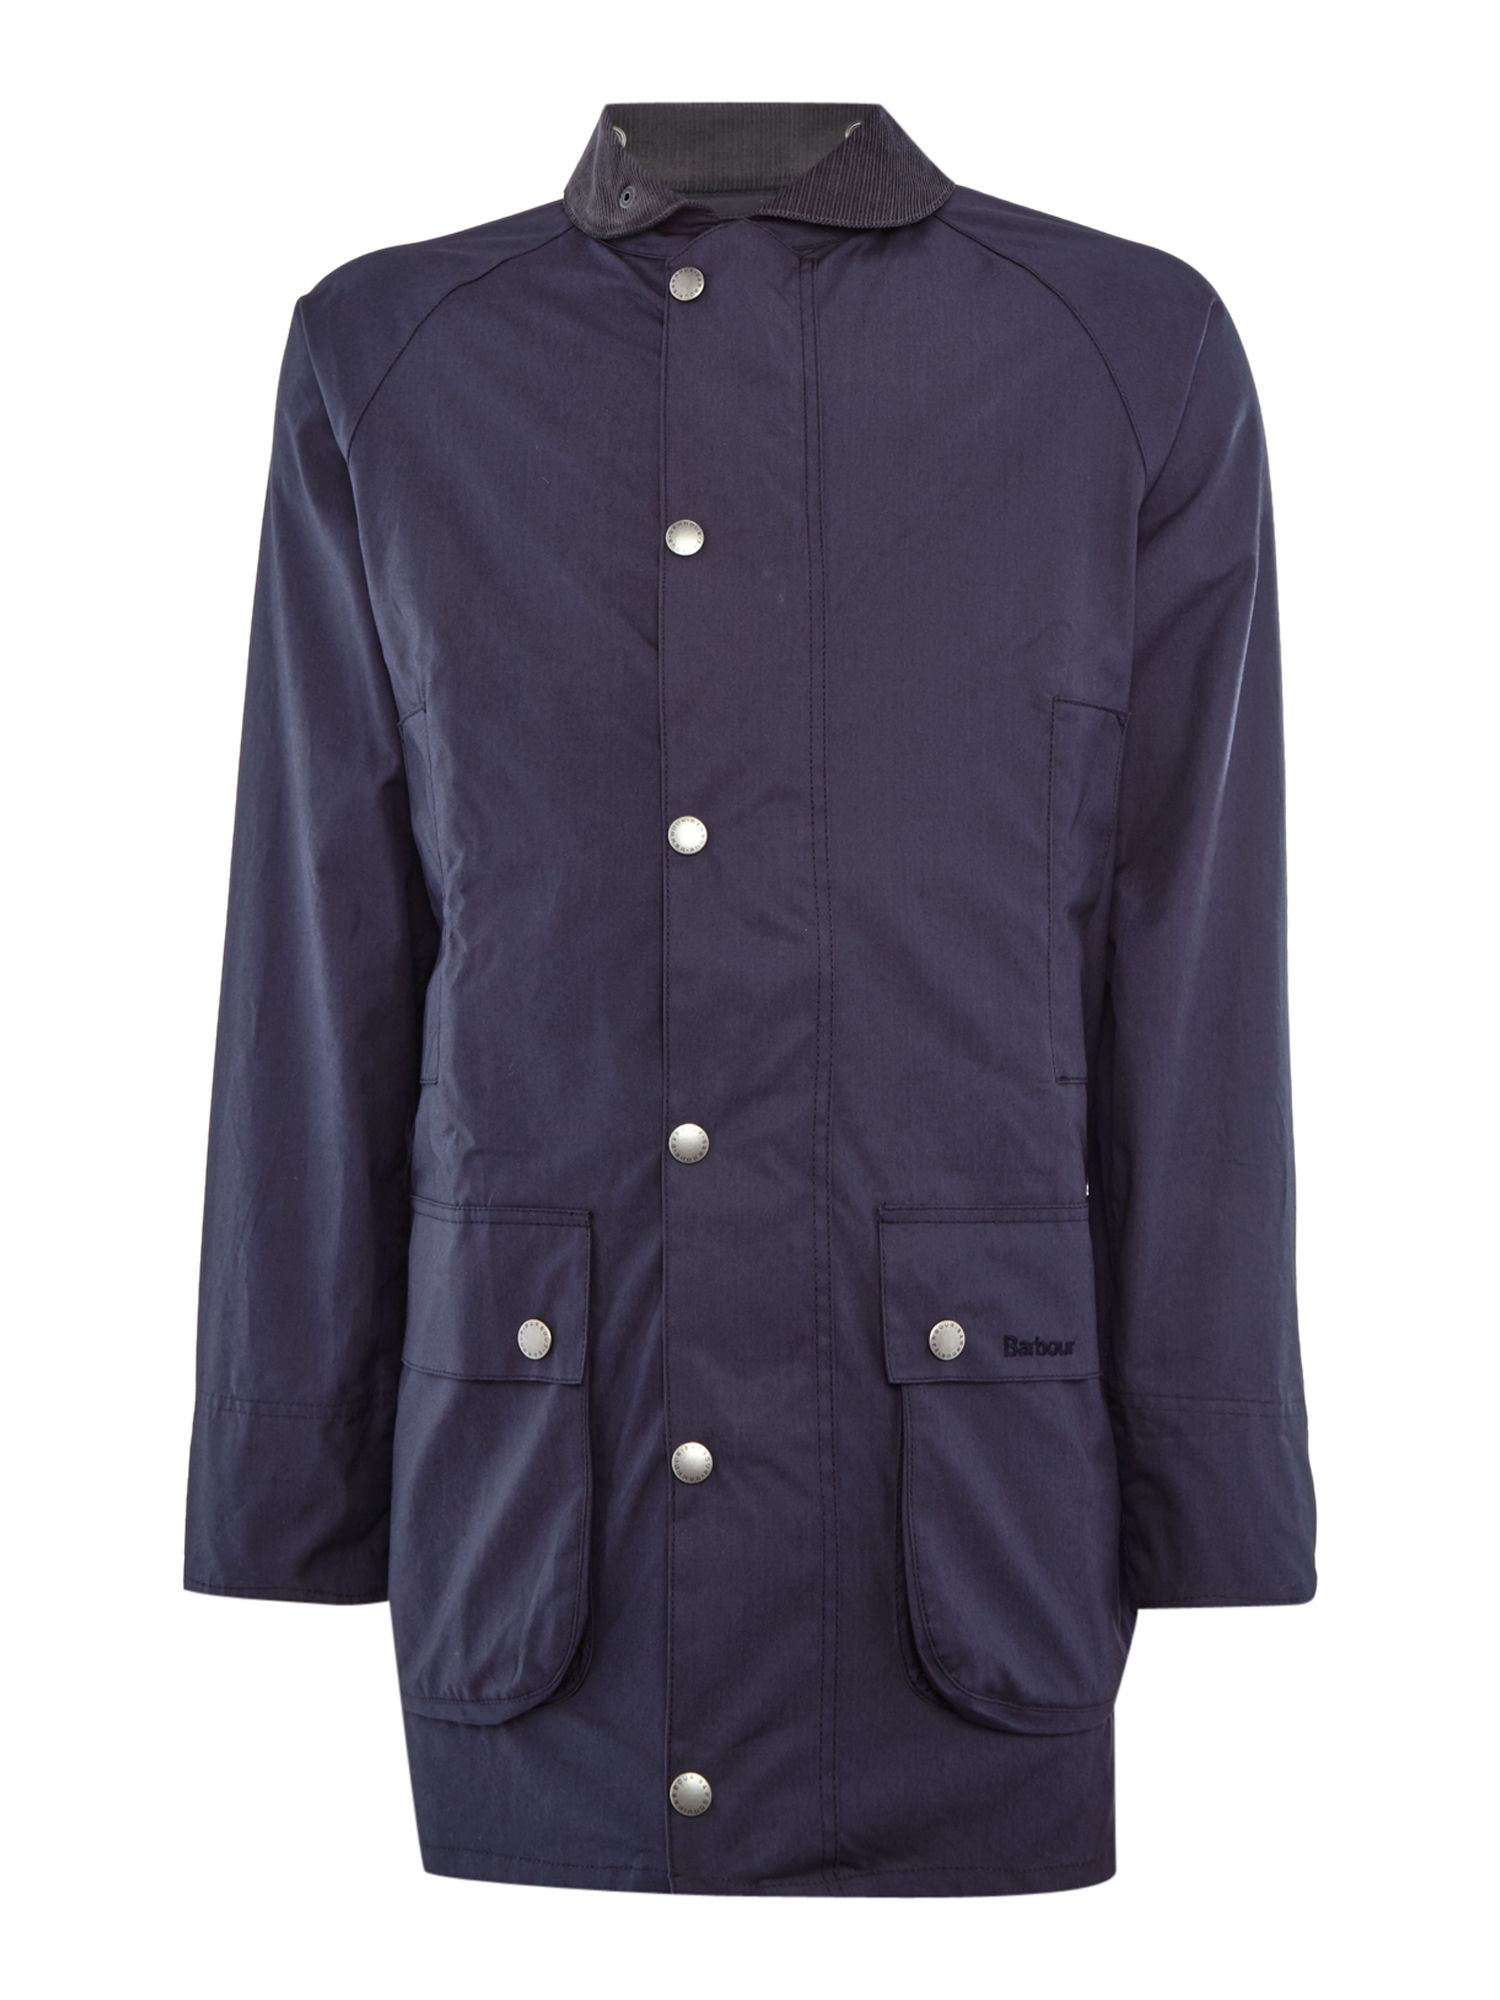 Barbour Cotton Classic Jacket in Blue for Men